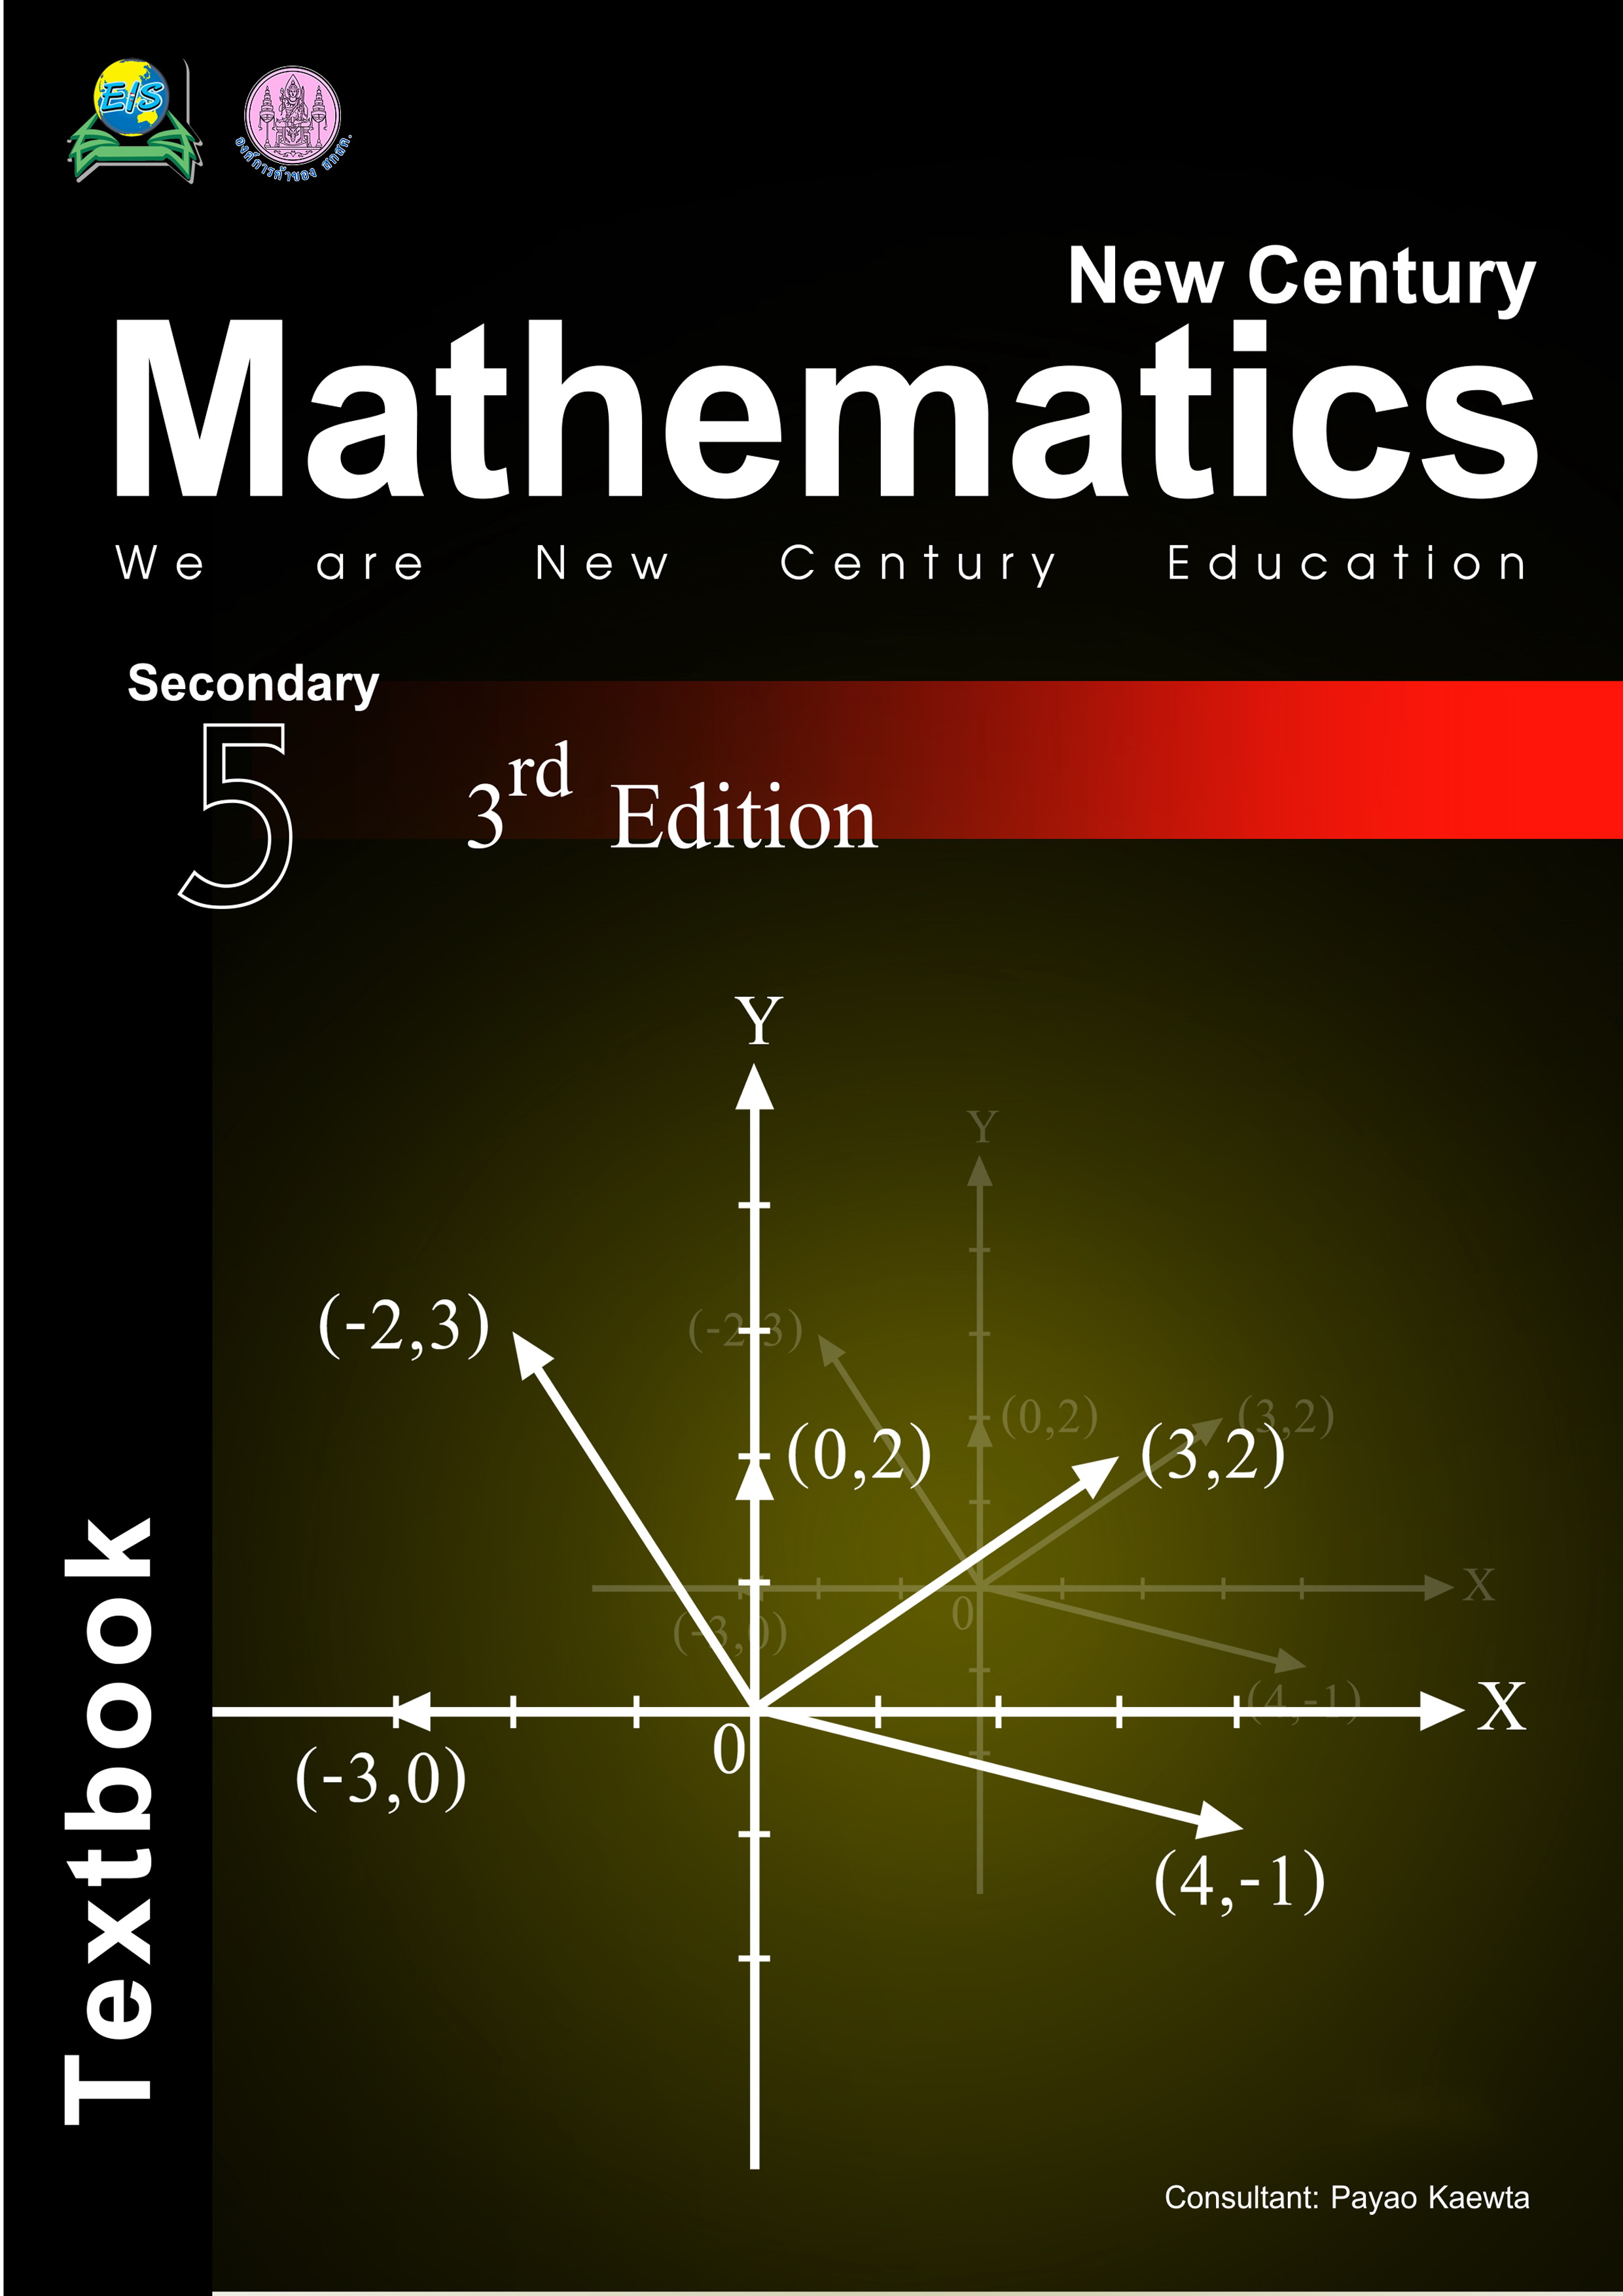 New Century Mathematics Secondary 5 Textbook